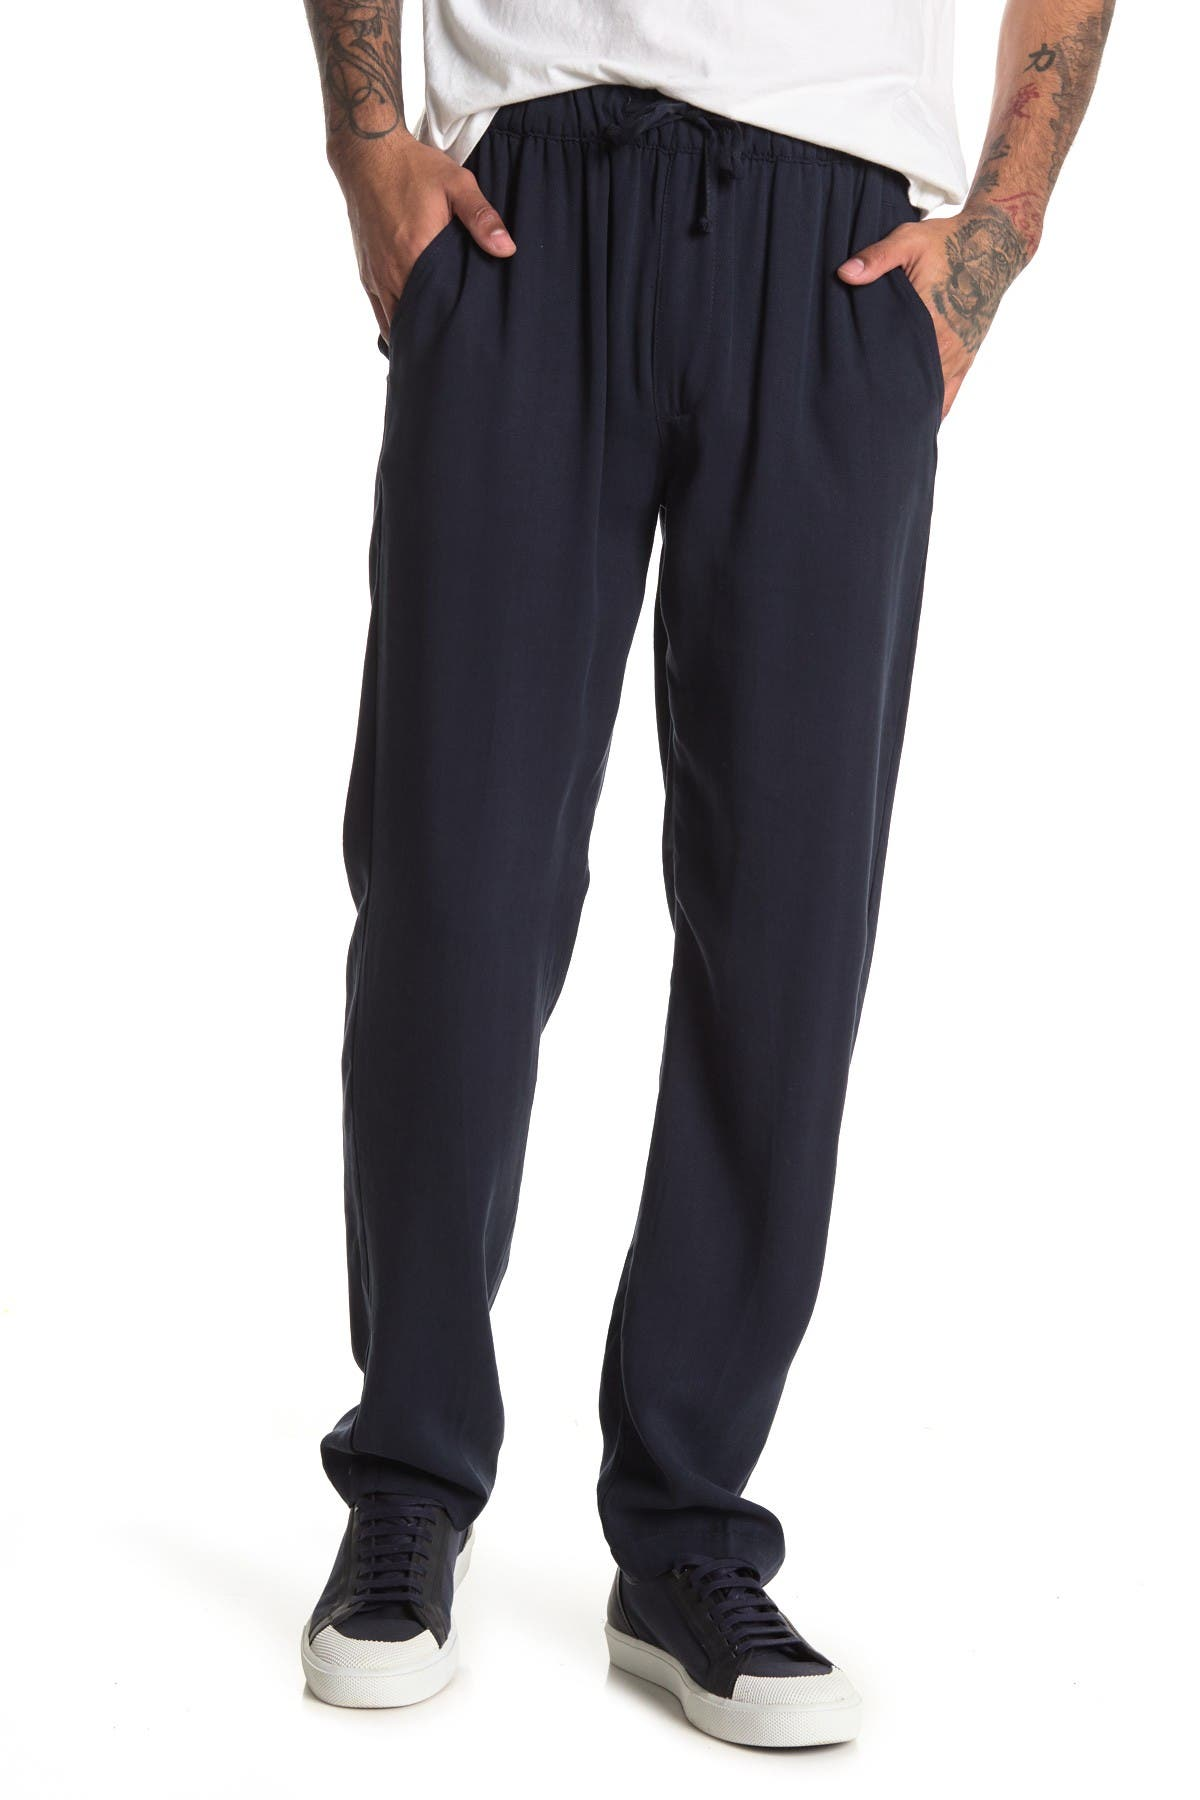 Image of Onia Carter Drawstring Lounge Pants